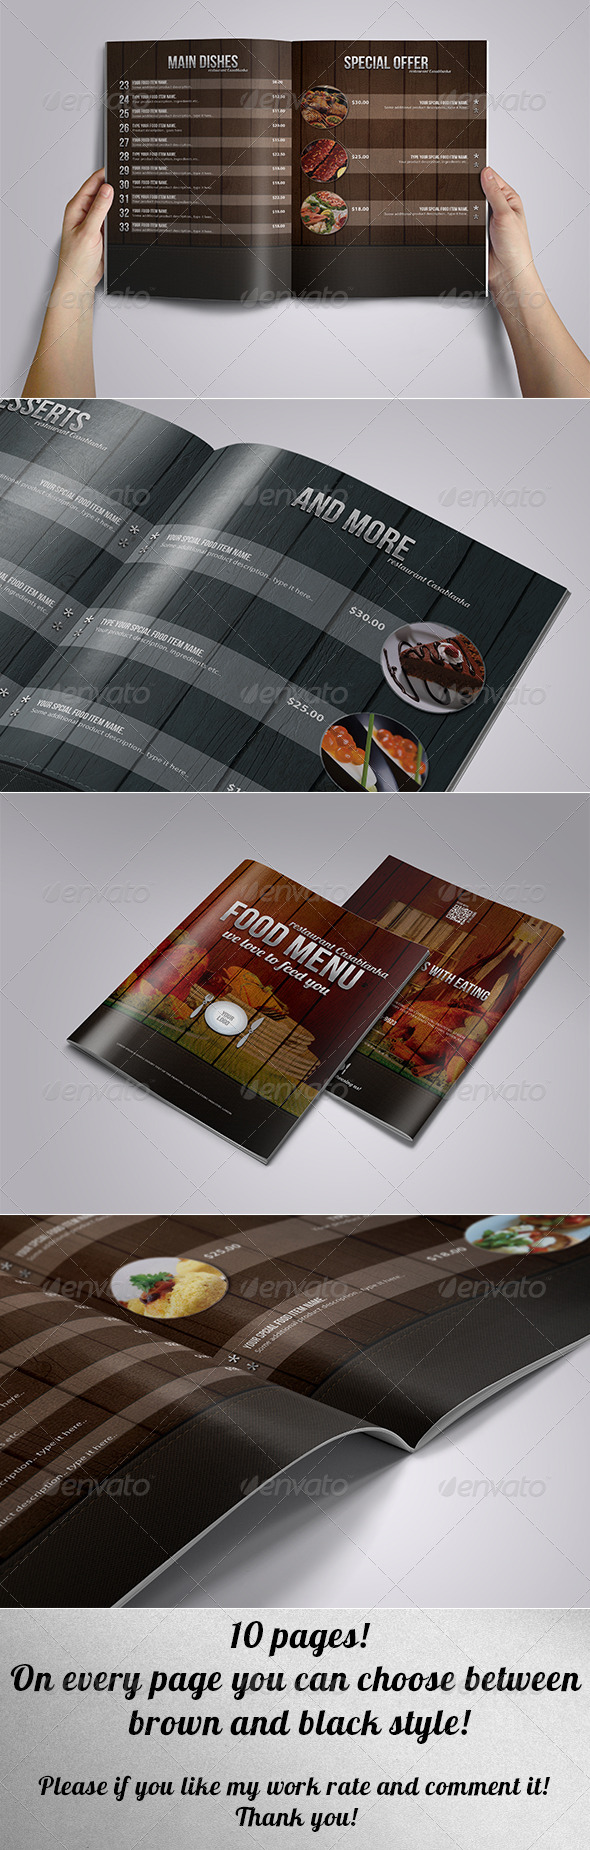 GraphicRiver Elegant food menu leather and wood 6799986